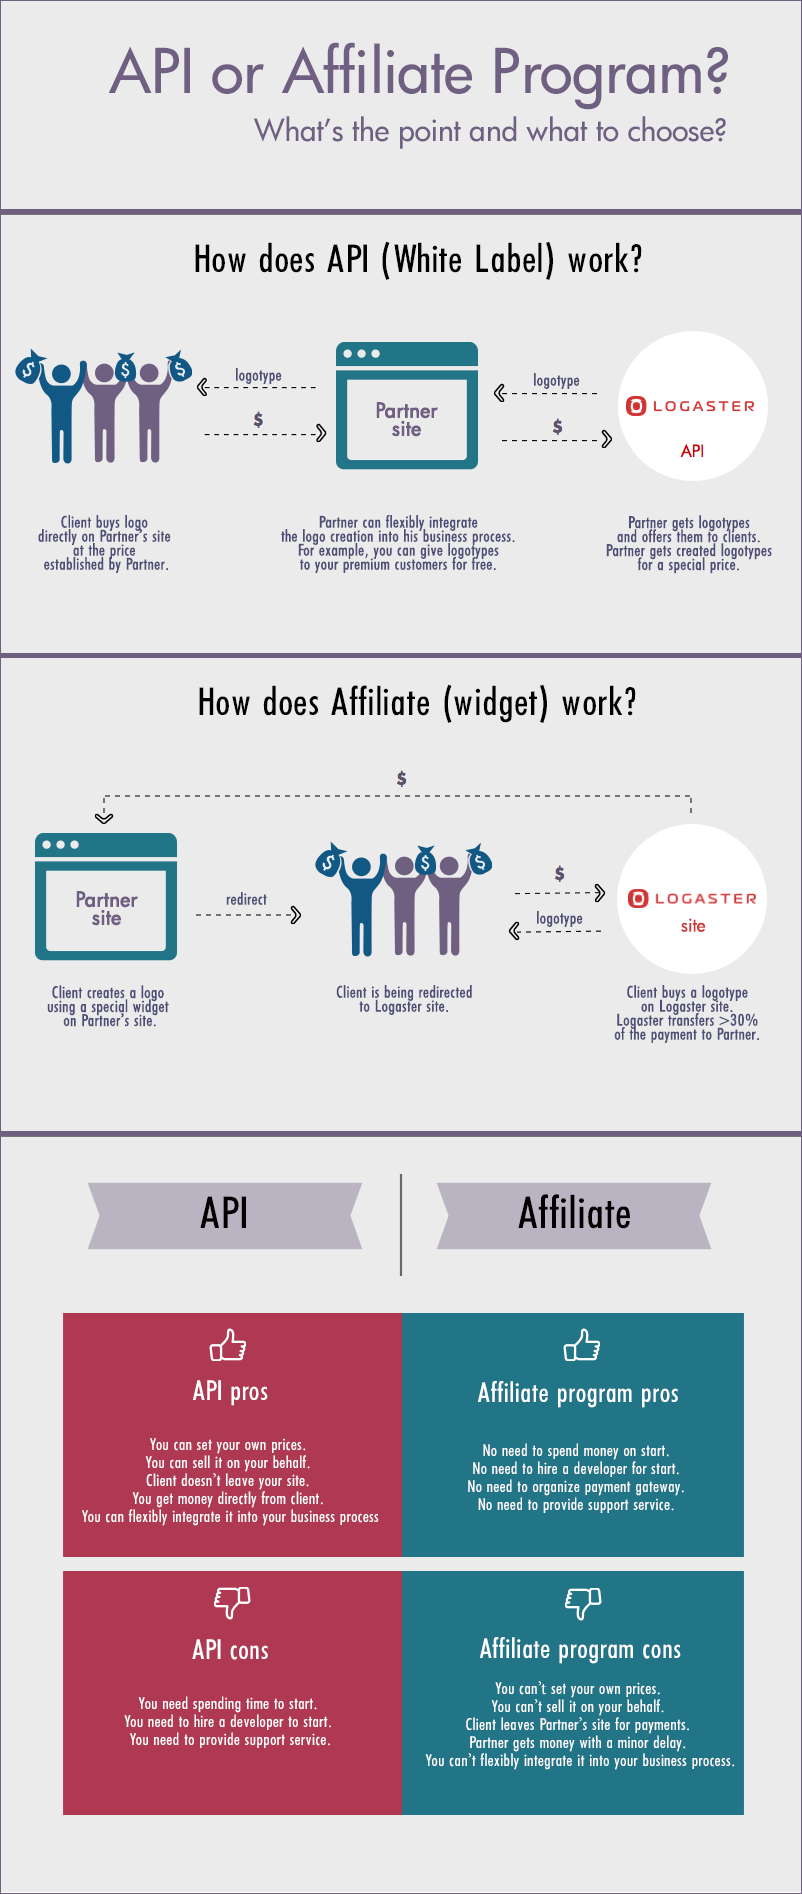 API or Affiliate Program? What's the point and what to choose?